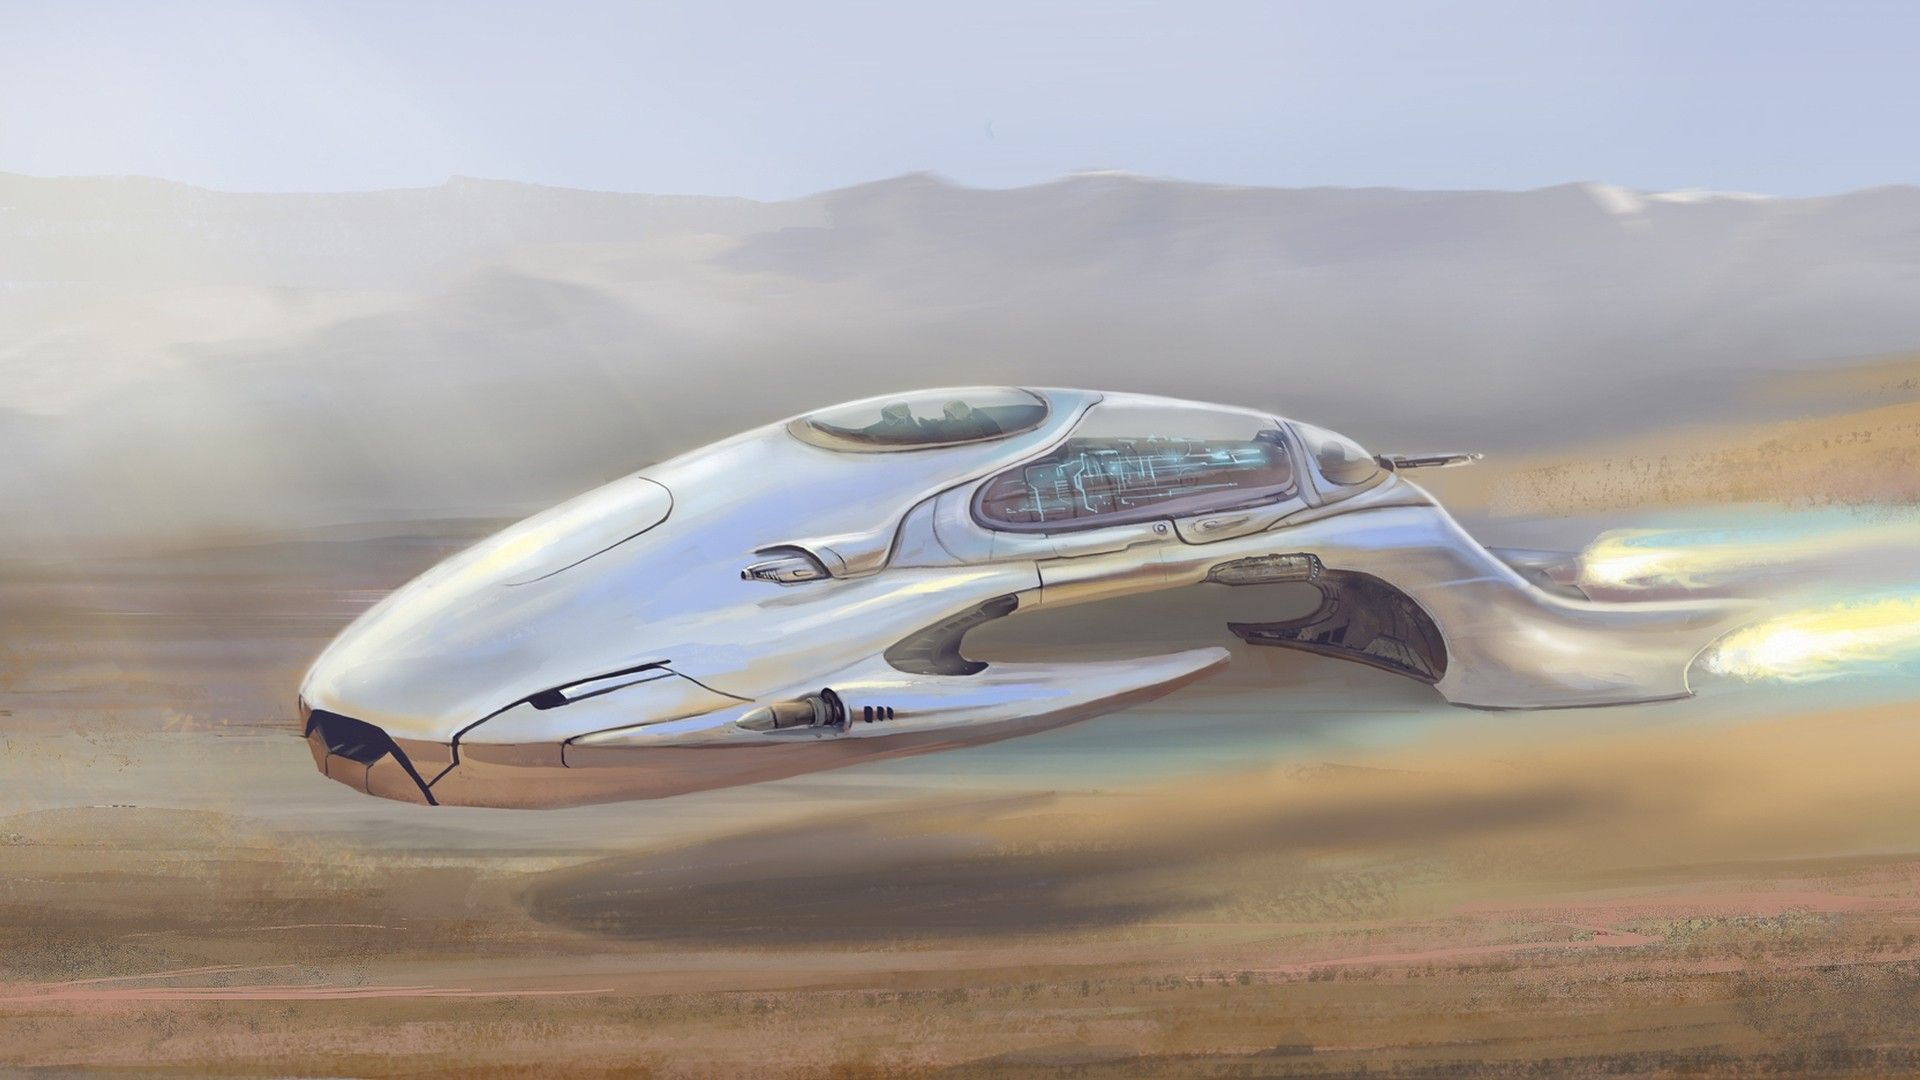 Exceptional Futuristic Wallpapers | Futuristic Aircraft HD Wallpapers